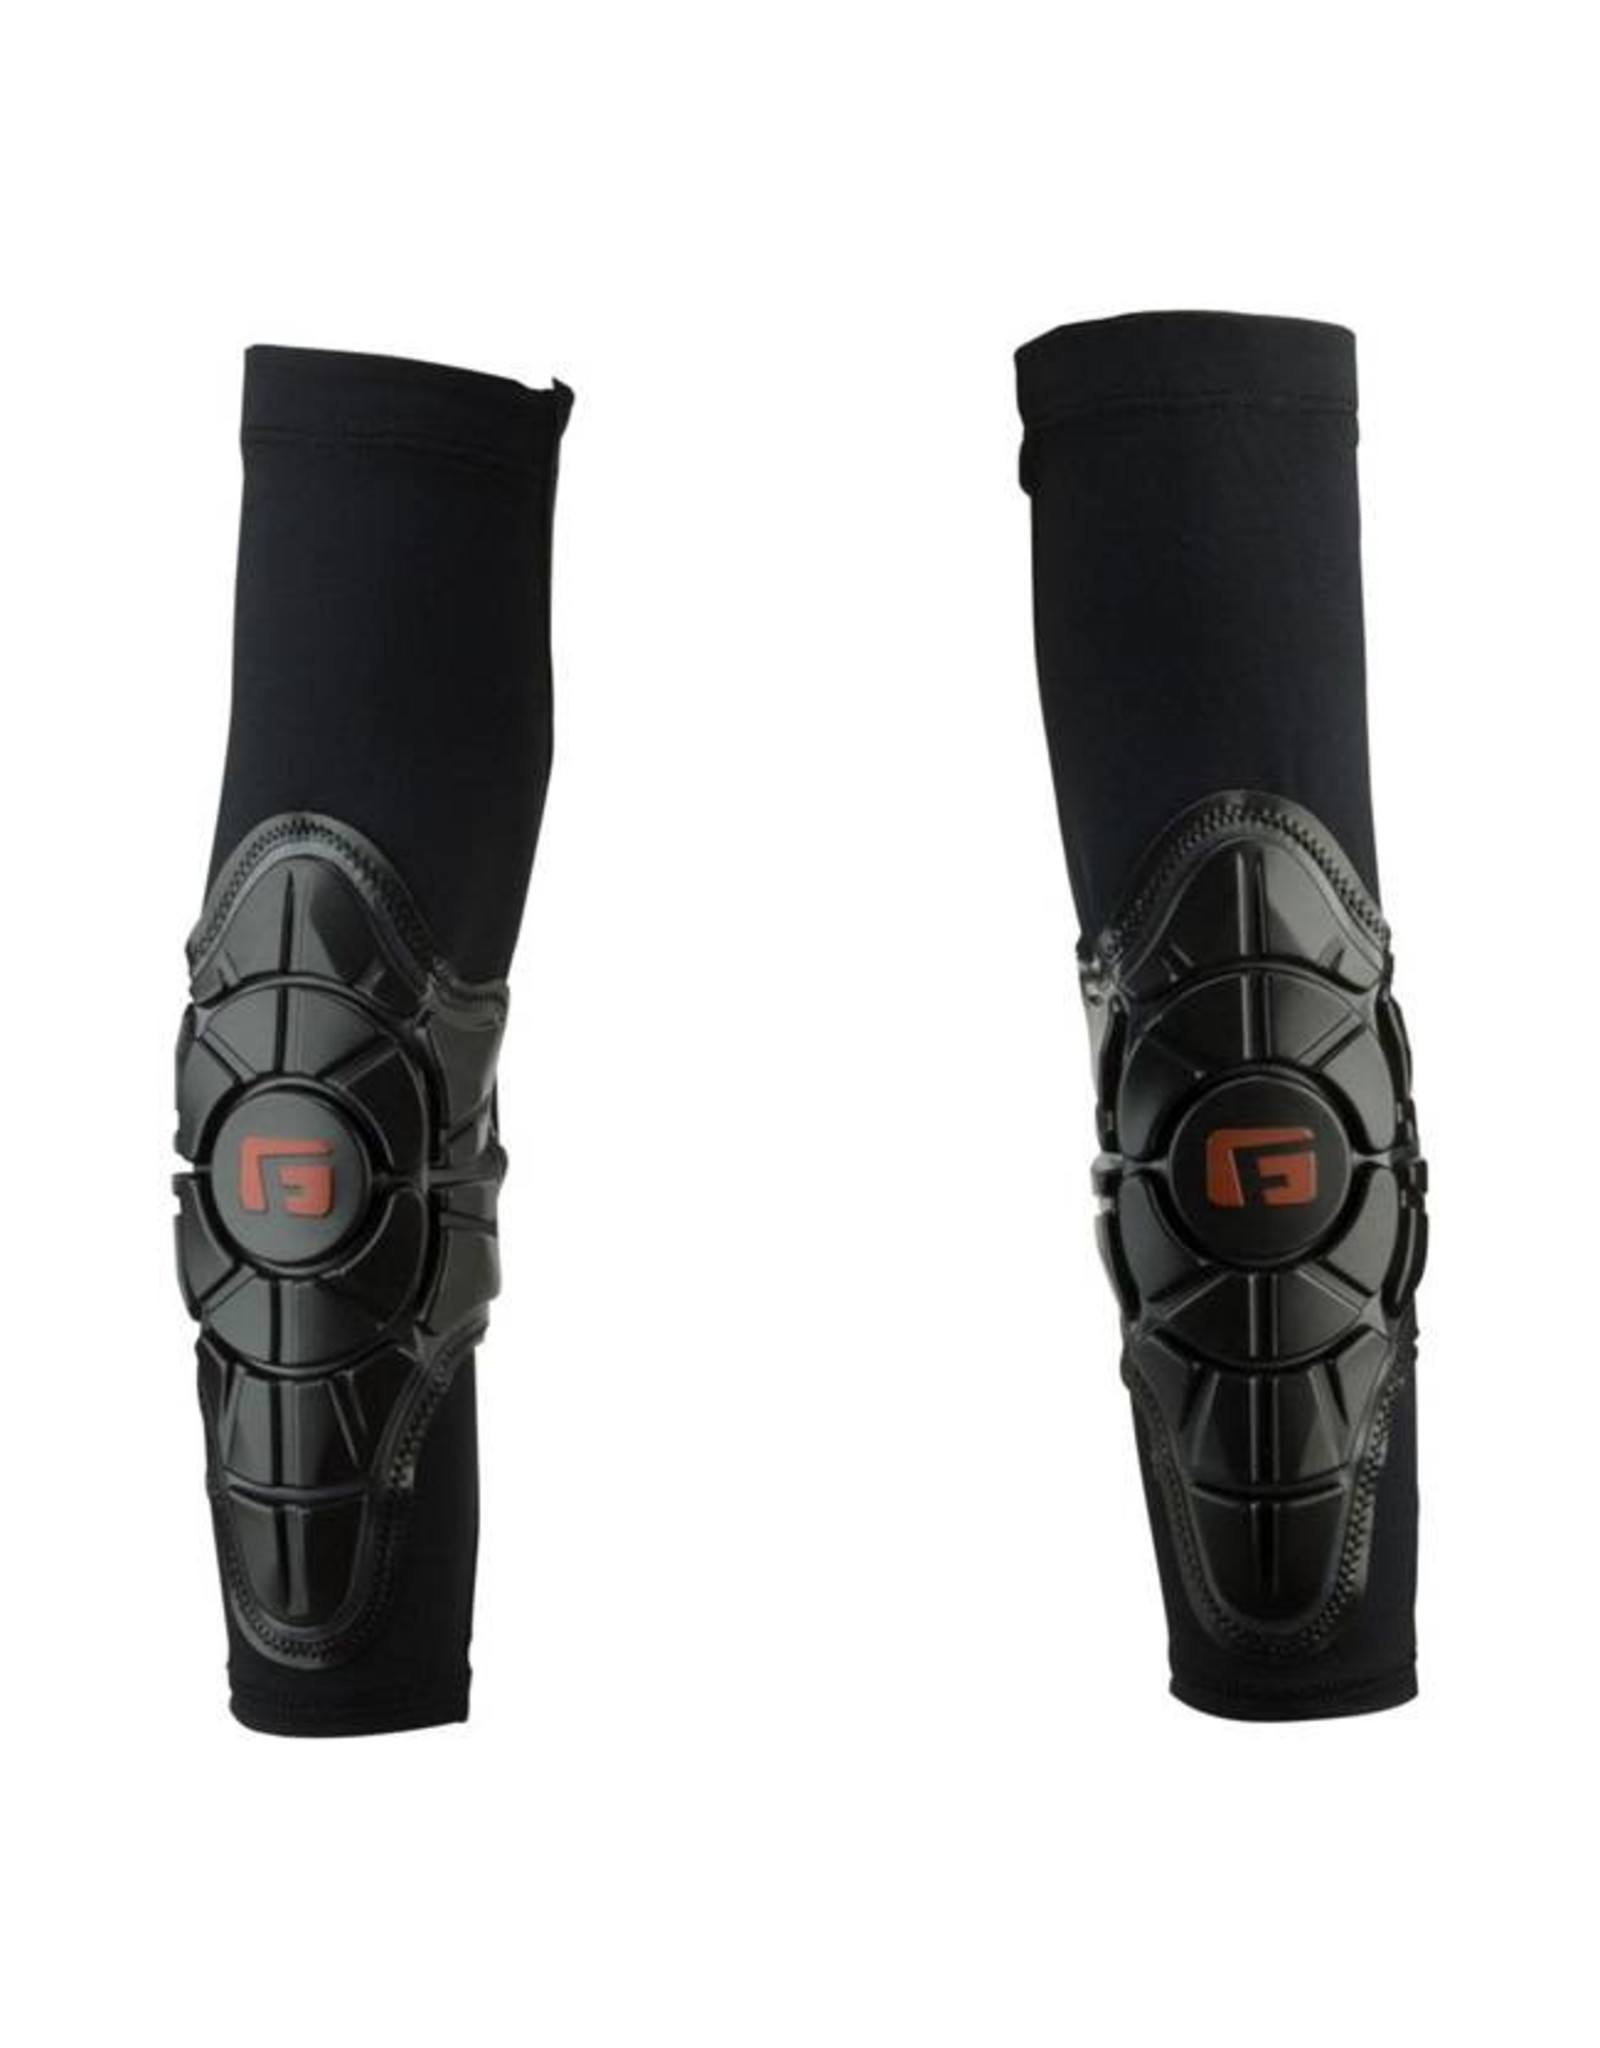 G-Form G-Form Pro-X Elbow Pad: Black, LG